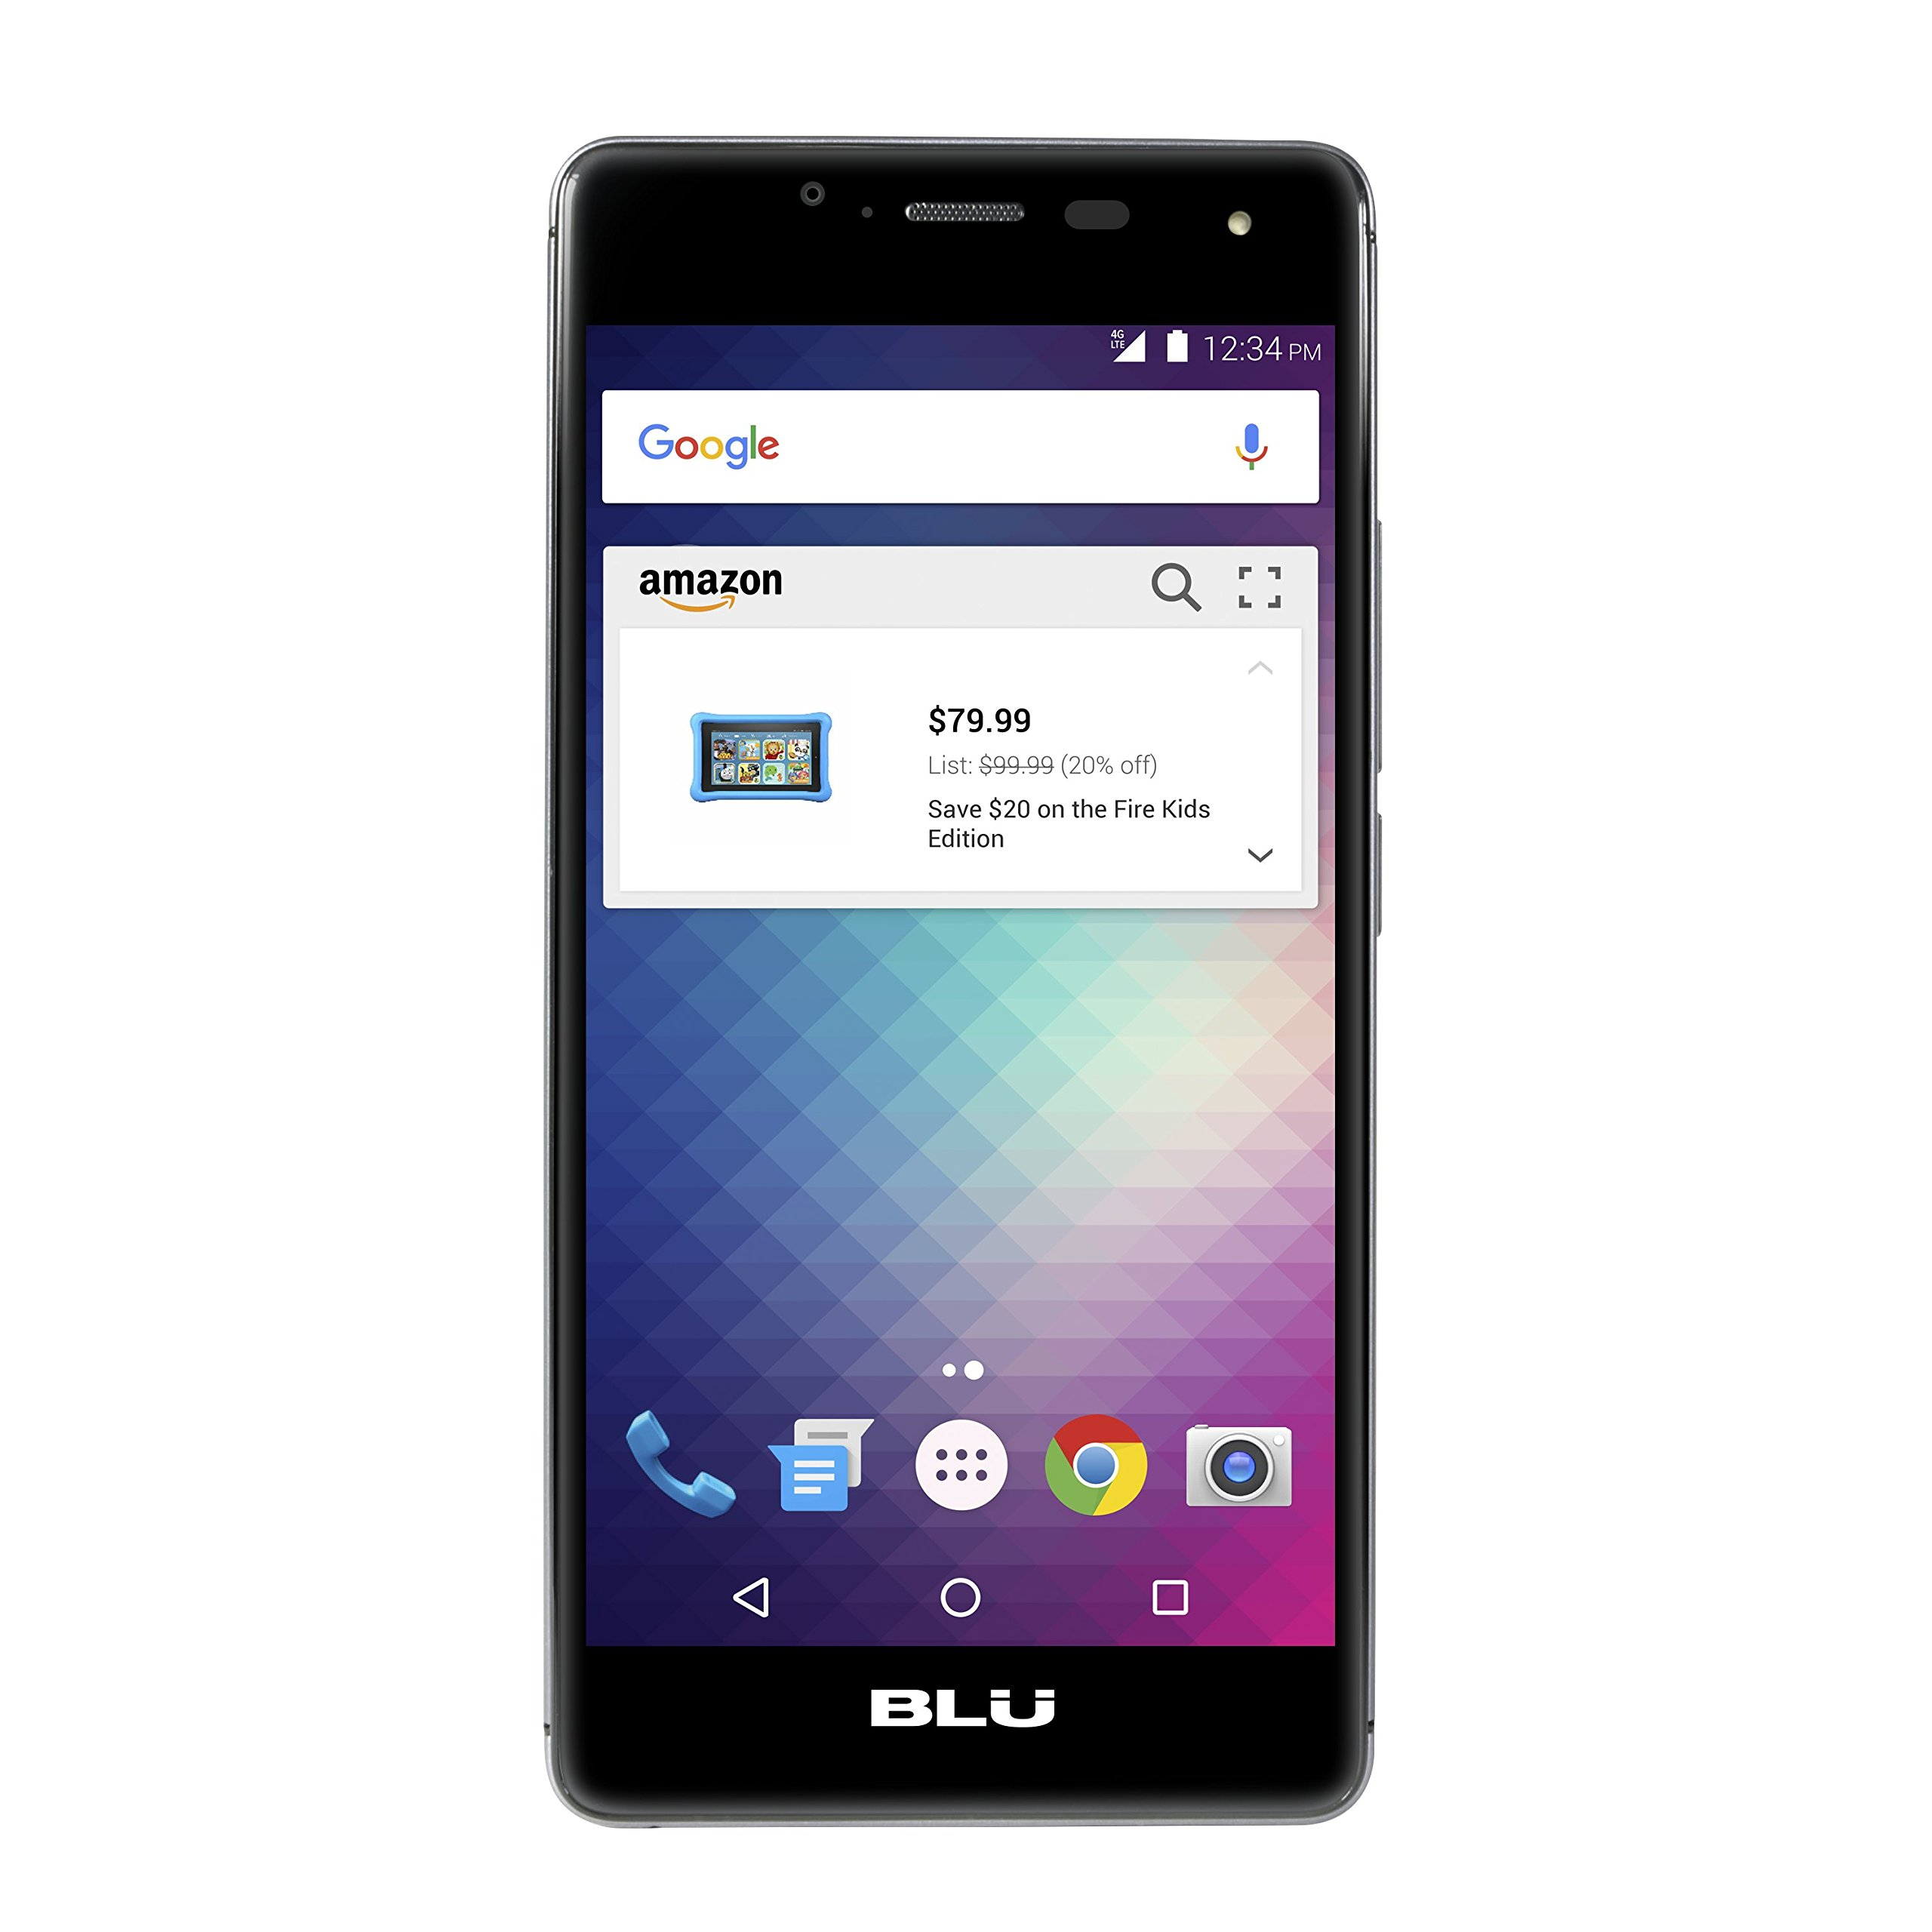 BLU R1 HD - 16 GB - Black - Prime Exclusive - with Lockscreen Offers & Ads - Unboxed